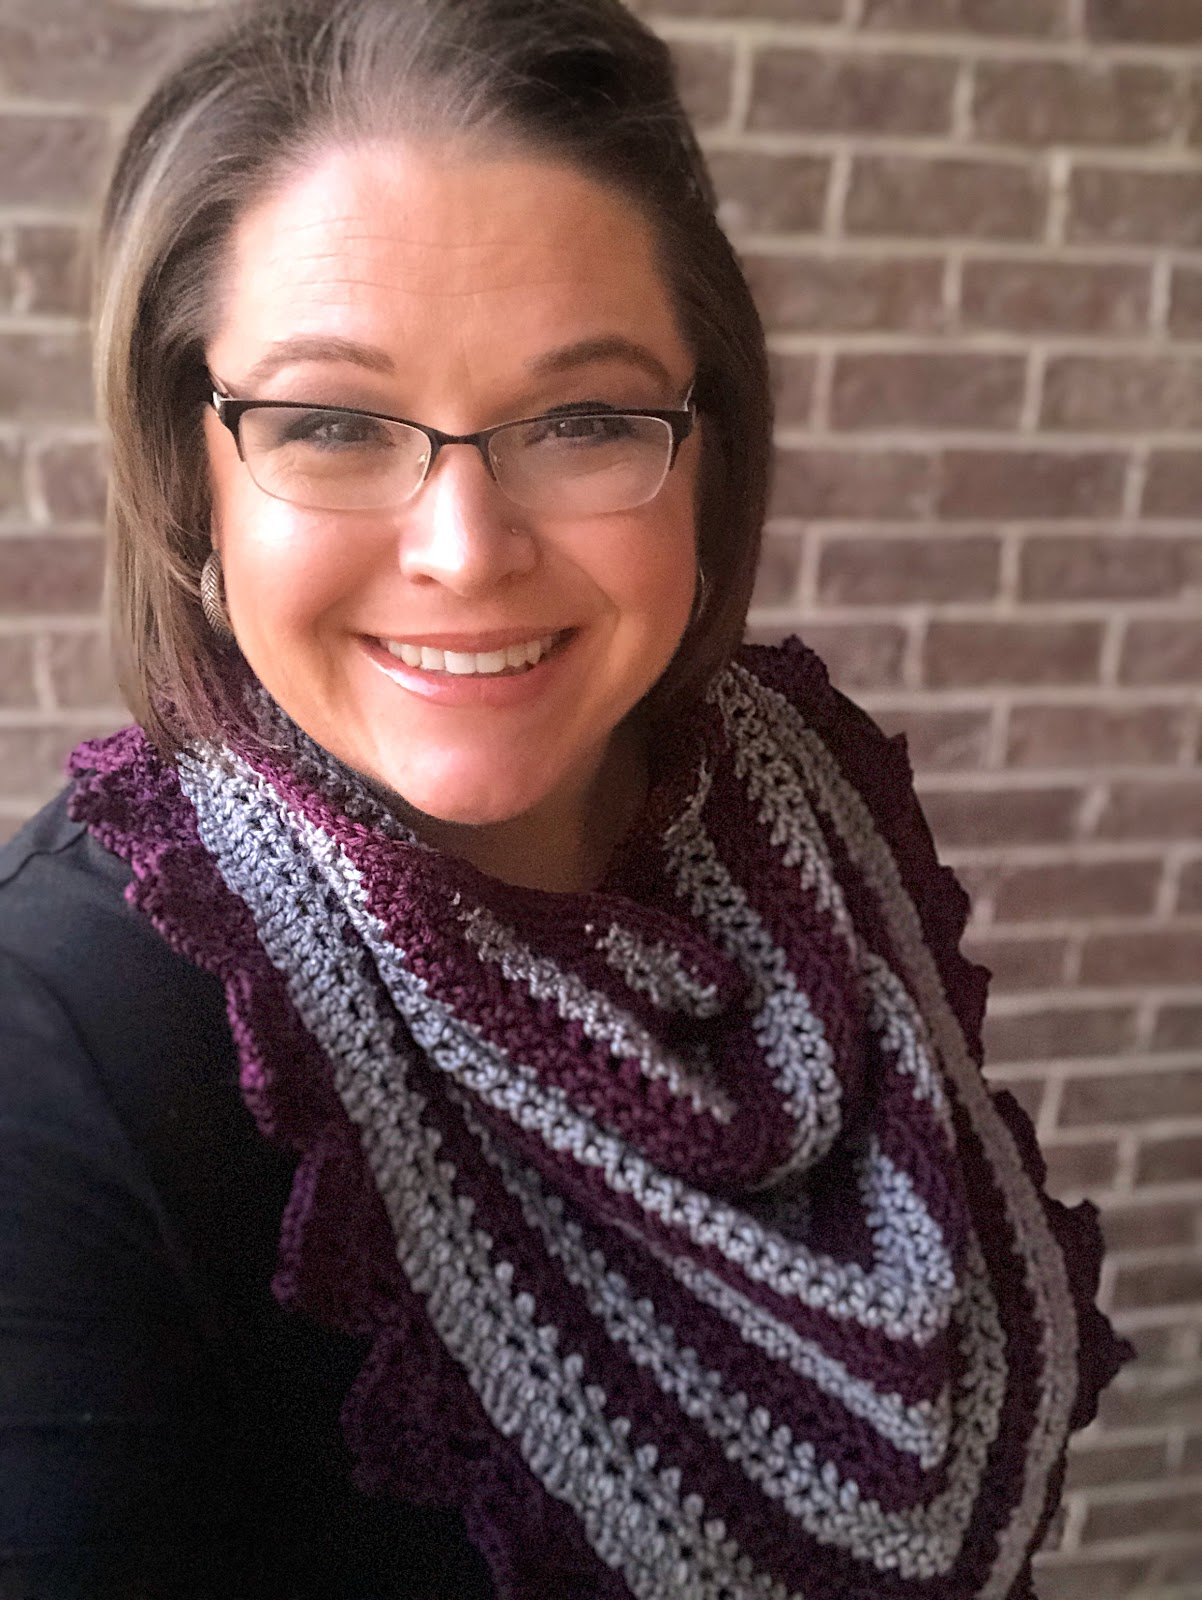 Crochet Shawl as bandana scarf